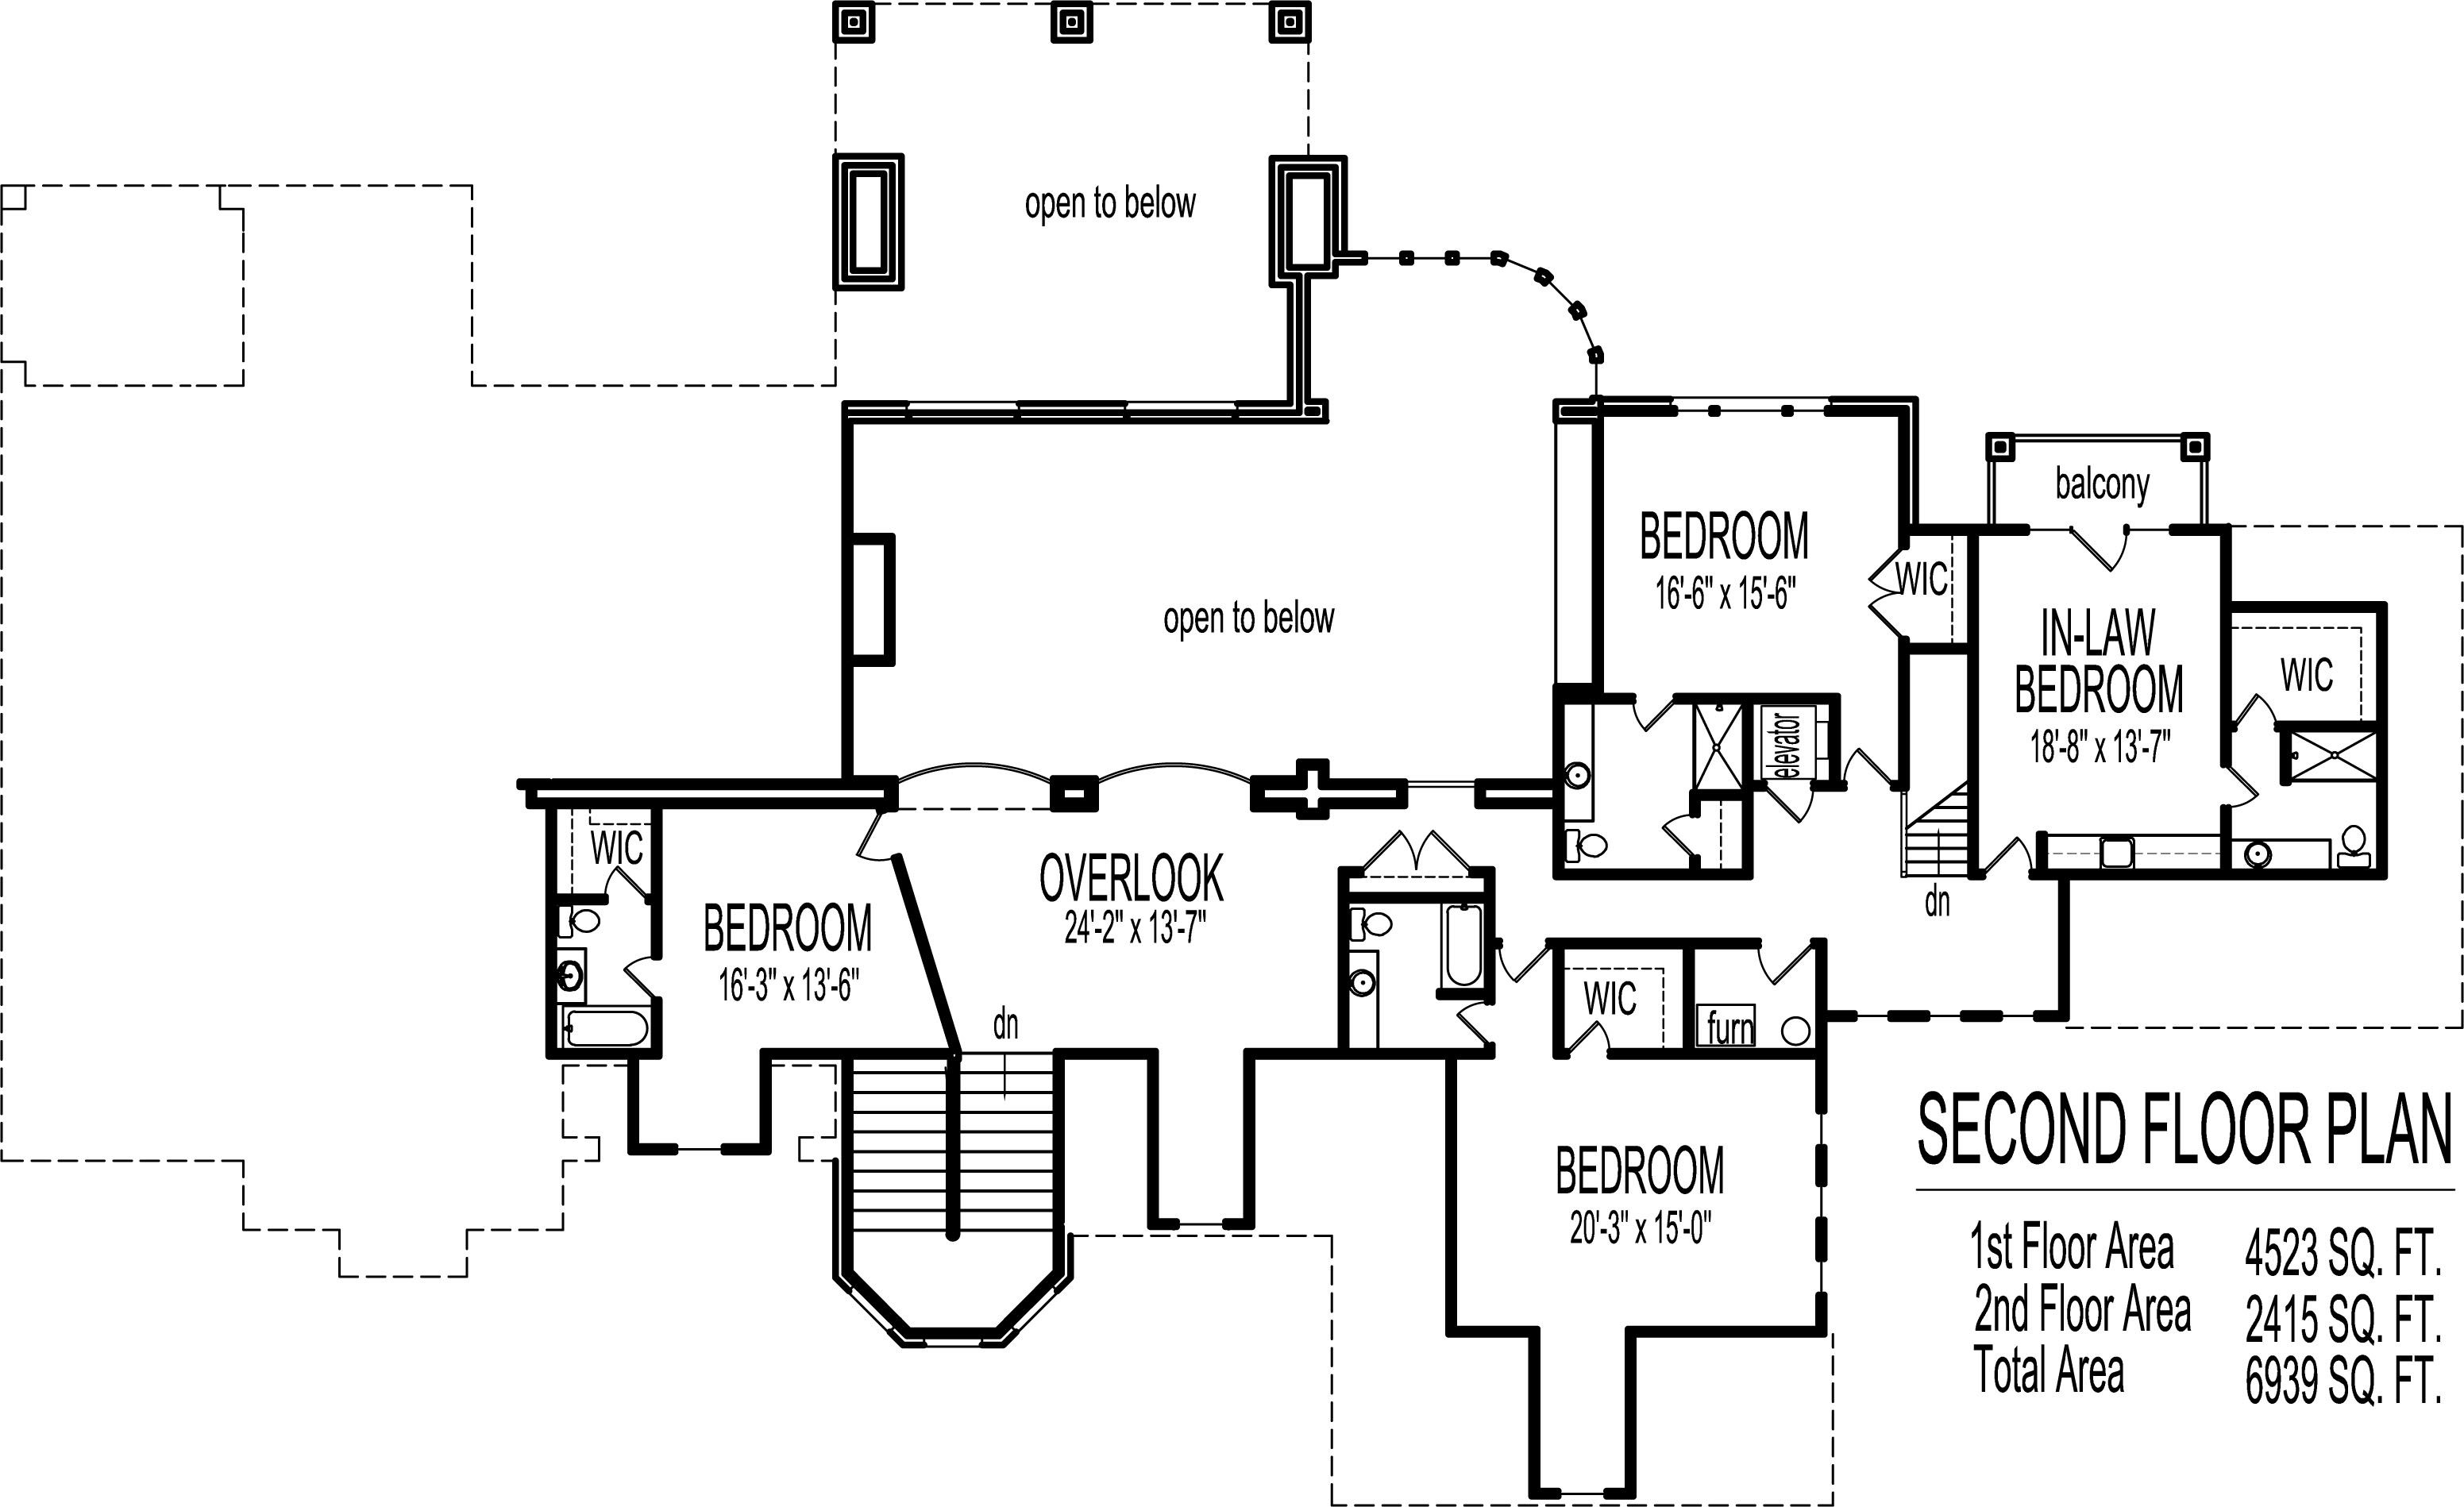 Mansion House Floor Plans Blueprints 6 Bedroom 2 Story 10000 Sq Ft House Flooring Large House Plans Best House Plans